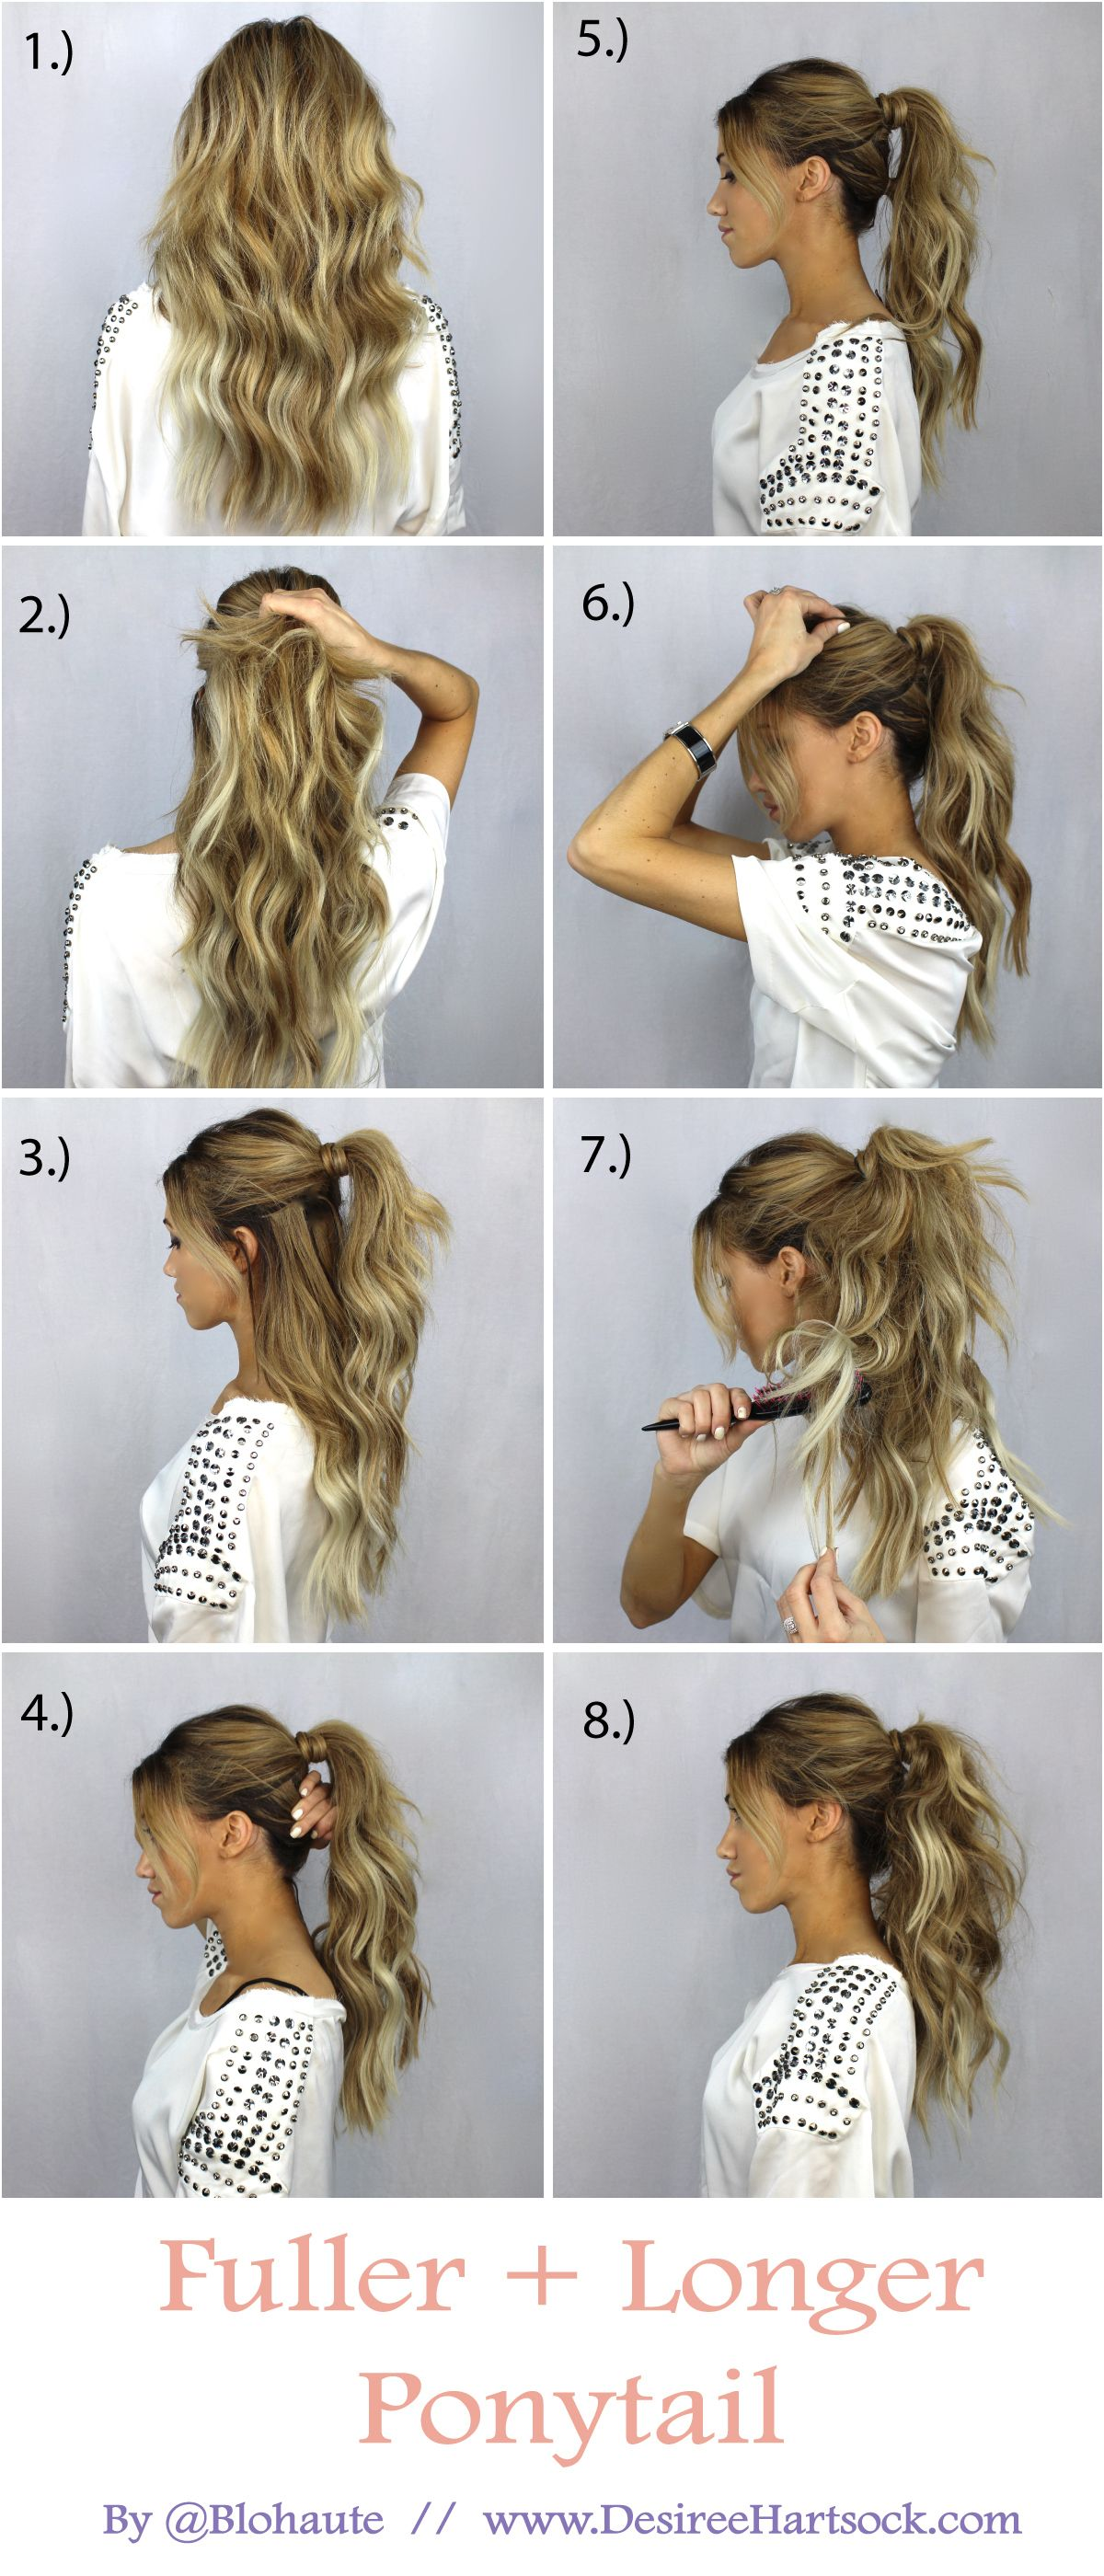 12 Original Easy Hairstyles For Long Thin Hair Style Easy Hairstyles Long Thin Hair Party Hairstyles For Long Hair